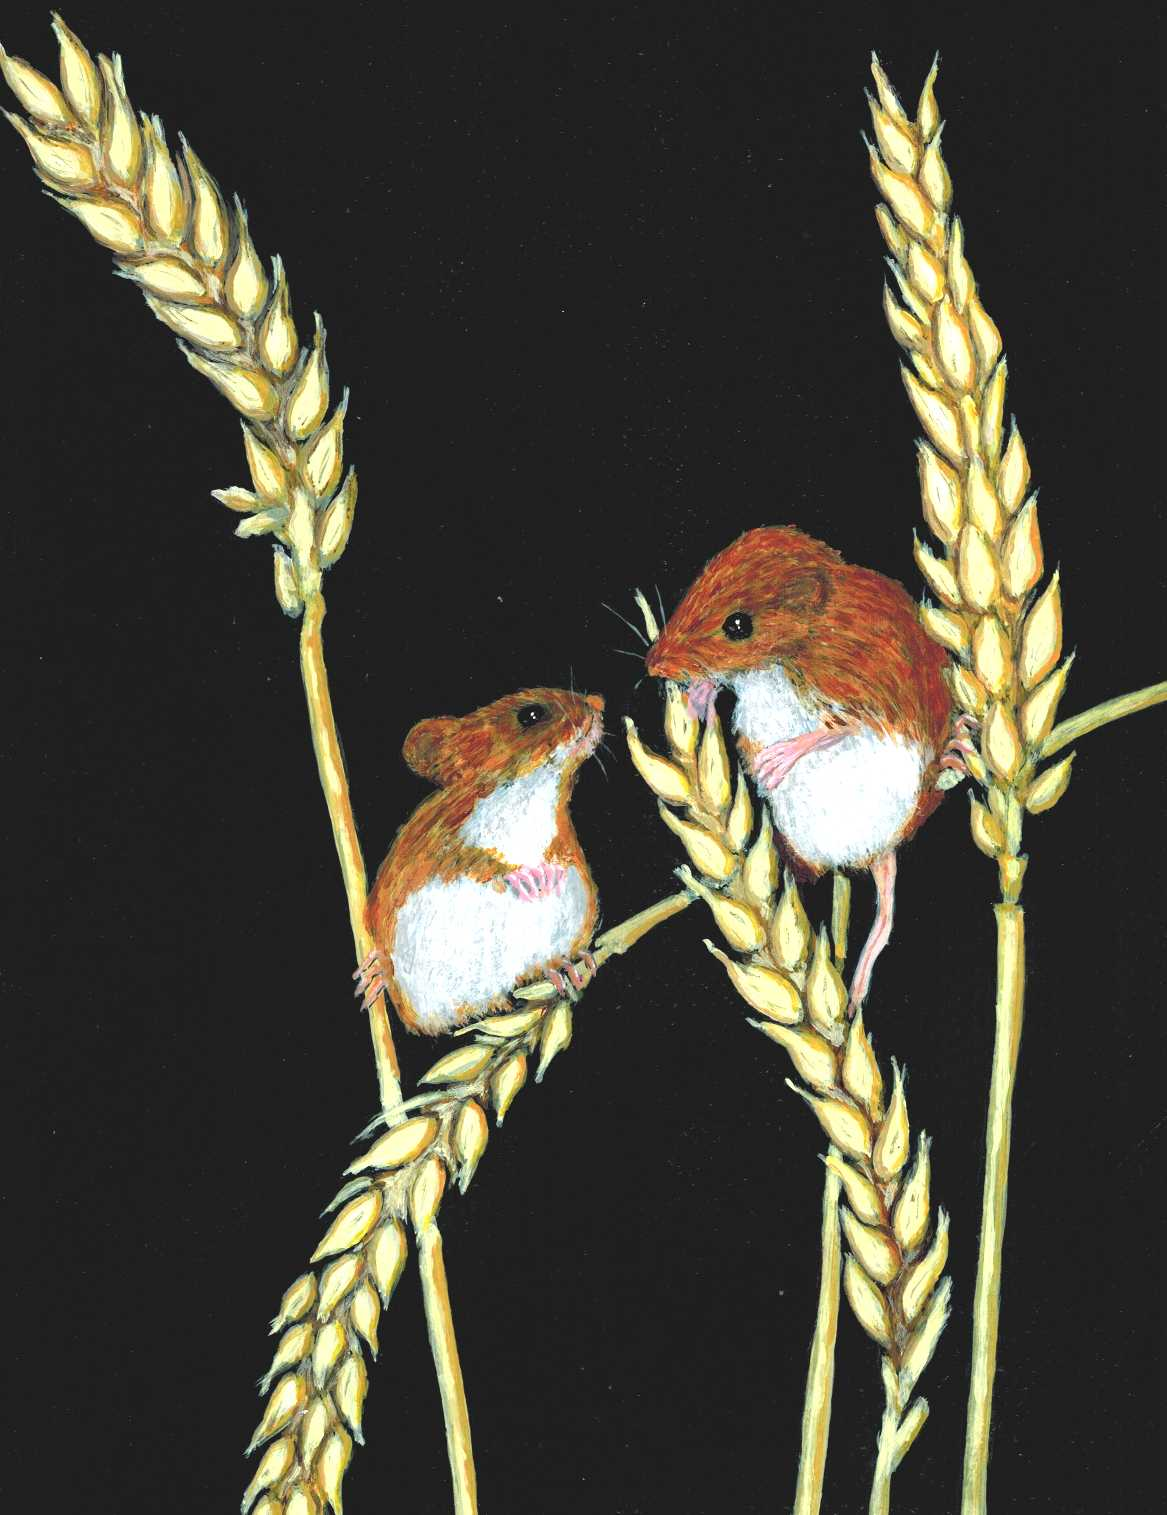 Original painting by Nelson Kruschandl, Field Mice, acrylic on paper